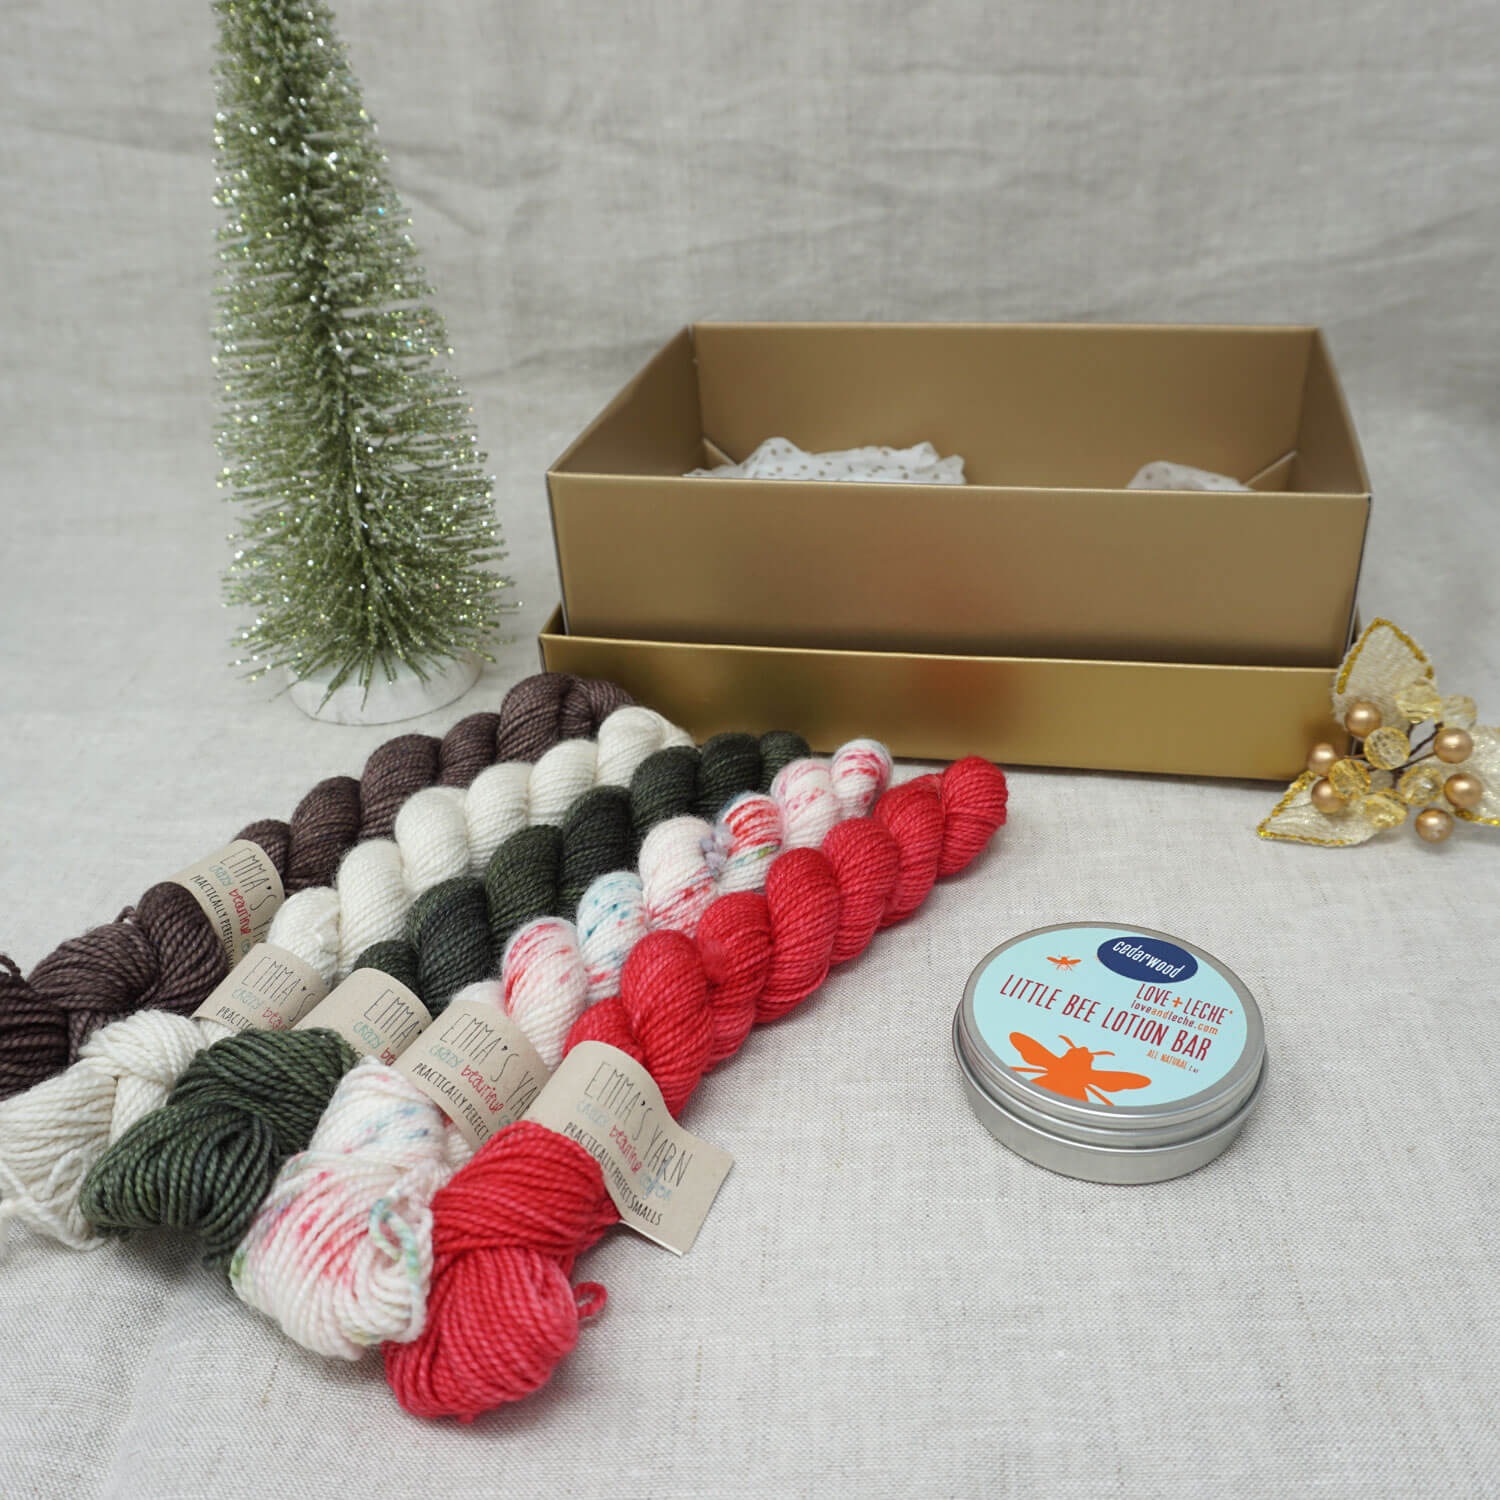 Christmas Knit or Crochet Gift 4 (5 x 20g & Love and Leche Lotion Bar) with Christmas Sprinkles, Stiletto, Kale, Whisper and Driftwood Practically Perfect Smalls Emma's Yarn